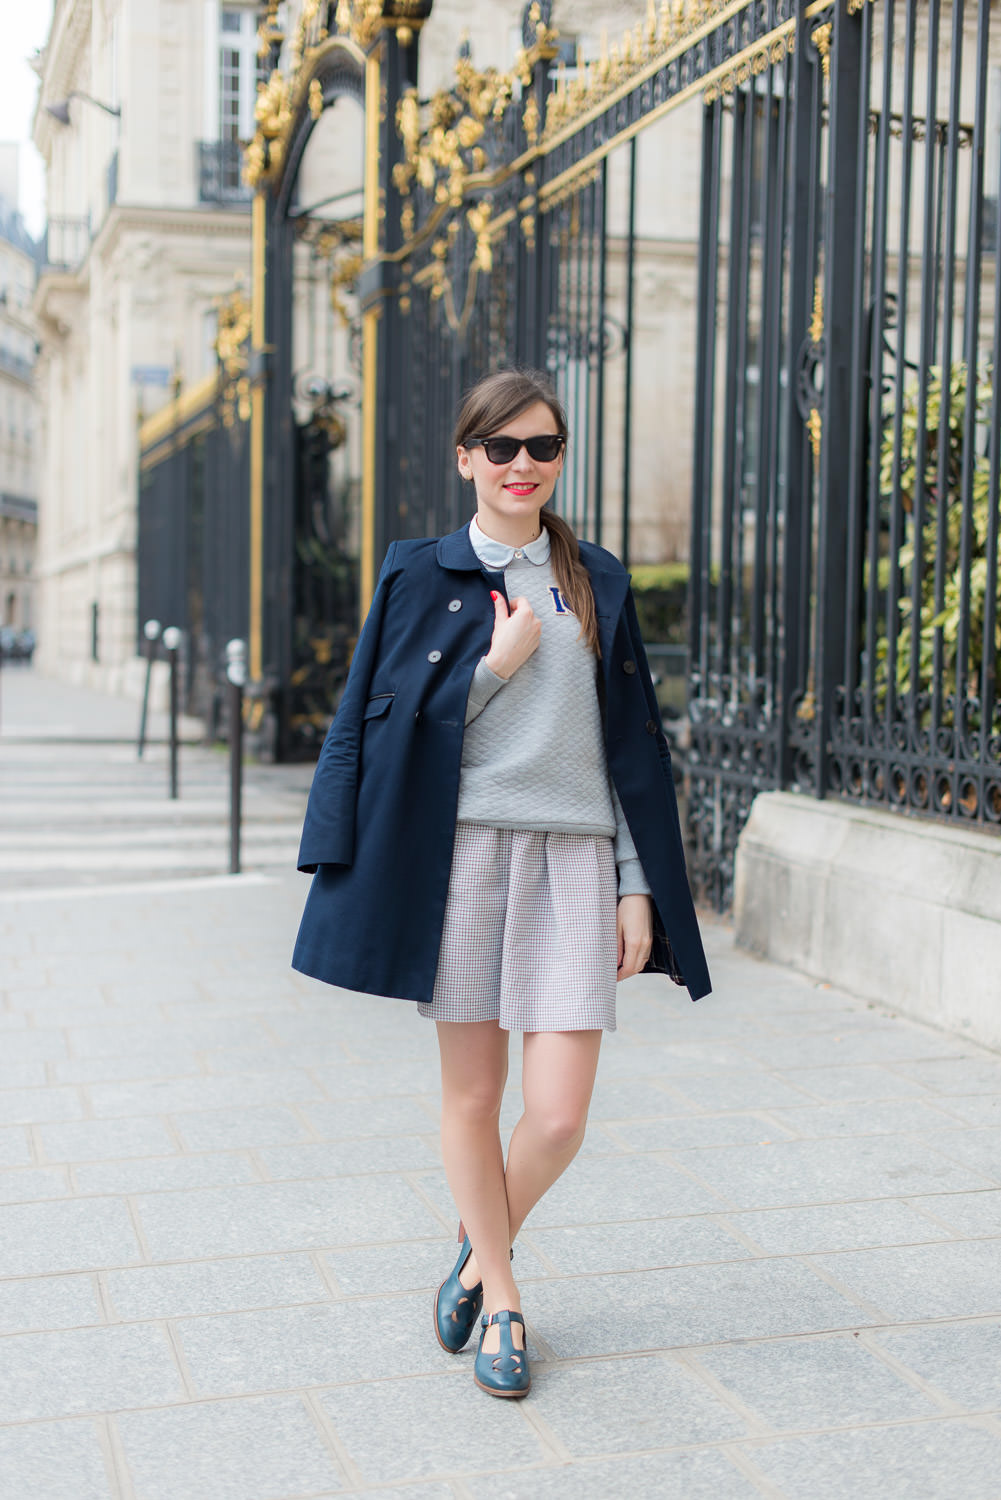 Blog-mode-Mode-And-The-City-looks-collaboration-clarks-orla-kiely (2 sur 11)